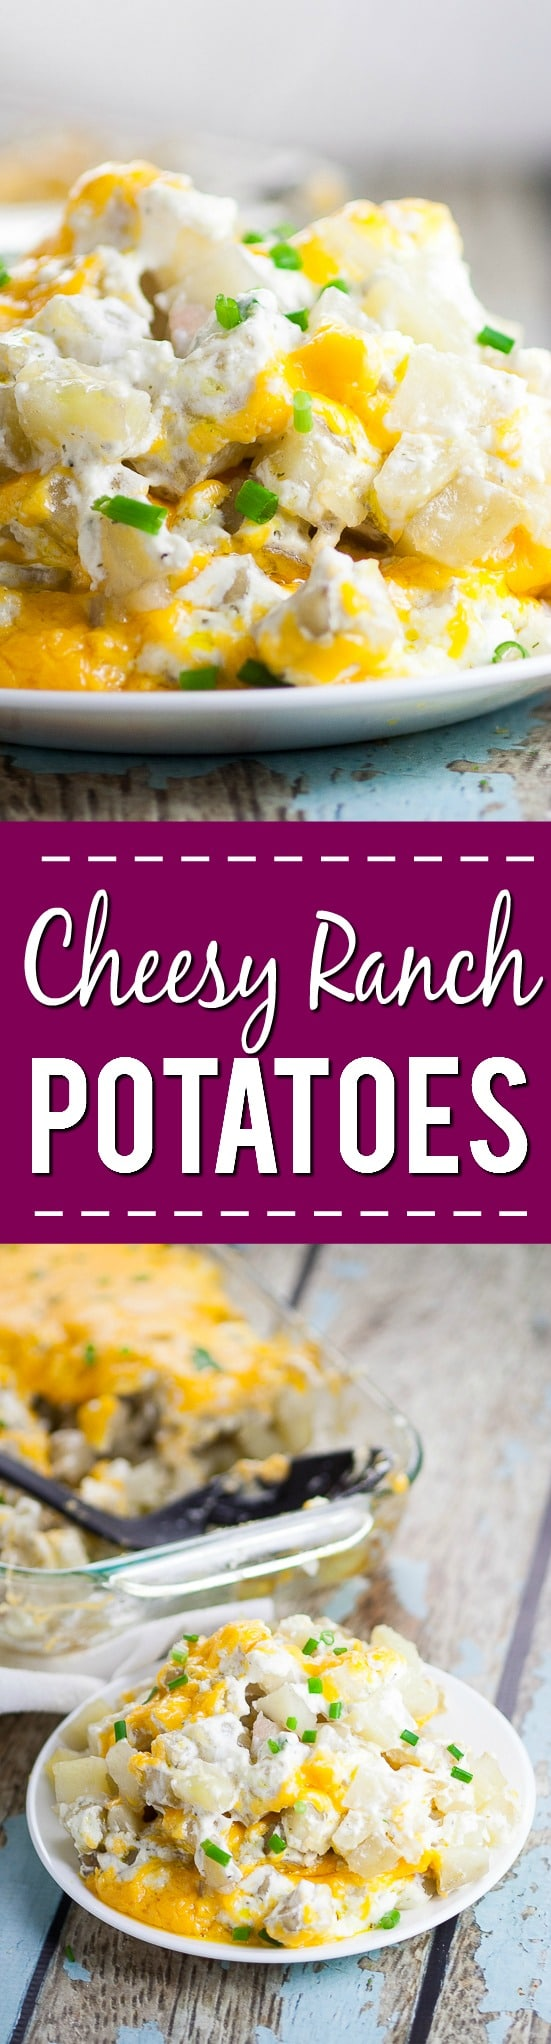 Cheesy Ranch Potatoes Recipe -Creamy, Cheesy Ranch Potatoes are the ultimate comfort food recipe that everyone will love. Perfect for potlucks, holidays, and a crowd favorite dish to pass. Soft, warm potatoes covered in creamy ranch and cream cheese and topped with gooey melted cheddar. Easy potato side dish recipe.